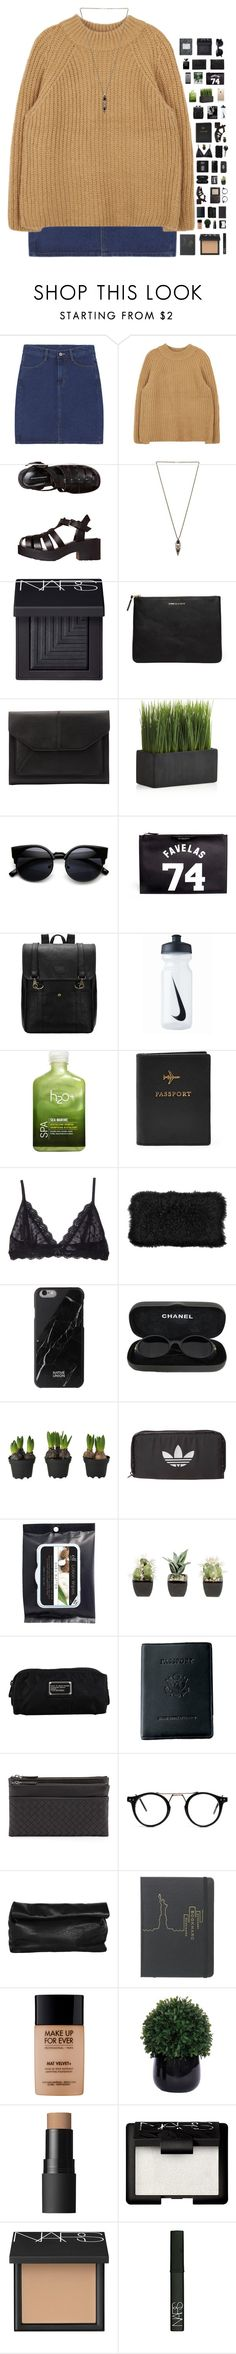 """gasoline"" by kamakira ❤ liked on Polyvore featuring Windsor Smith, Samantha Wills, NARS Cosmetics, Comme des Garçons, John Lewis, Crate and Barrel, Givenchy, NIKE, H2O+ and Eberjey"